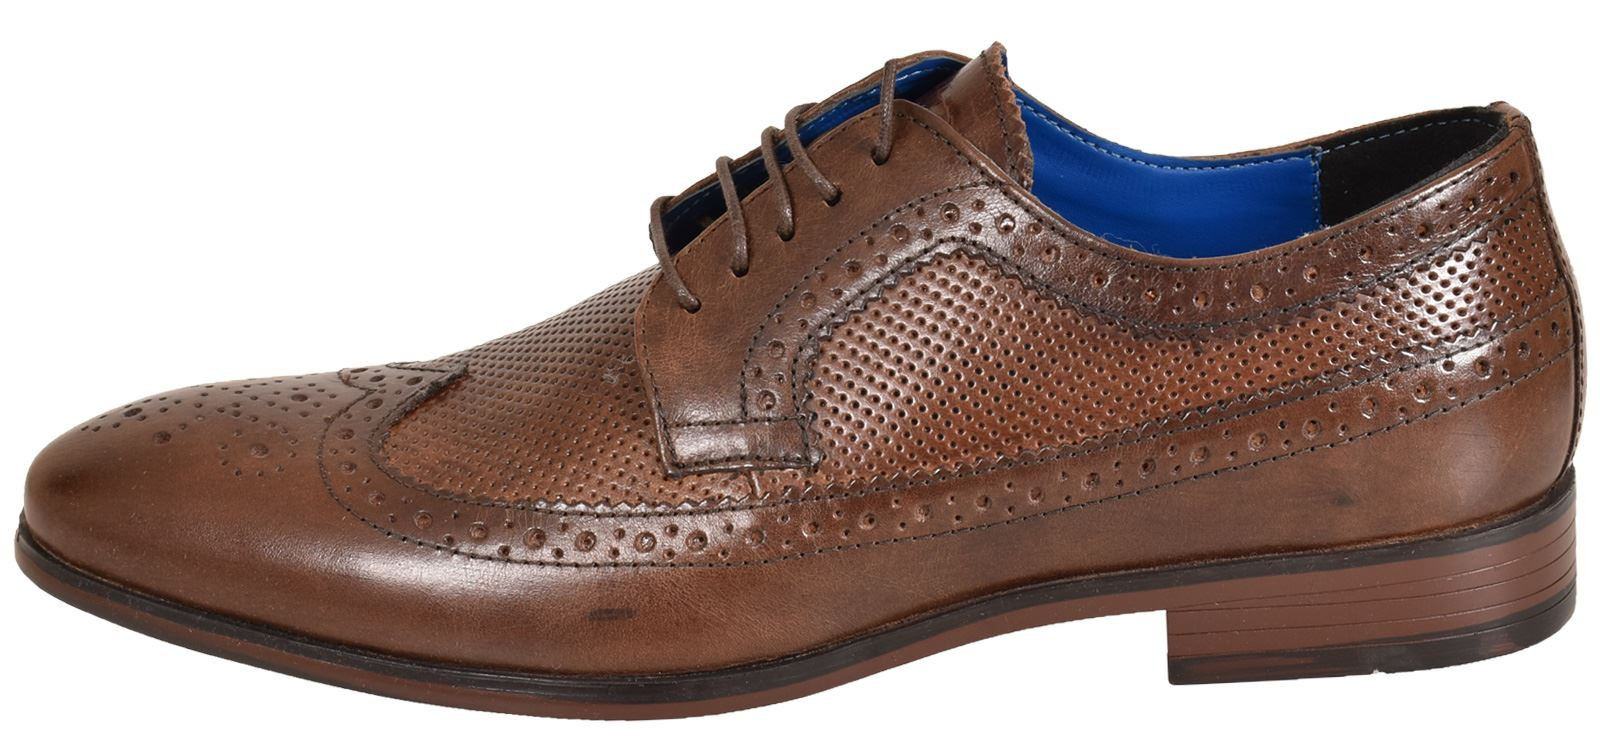 Mens-UK-Style-Leather-Lining-Formal-Office-Wedding-Smart-Work-Brogue-Shoes thumbnail 104